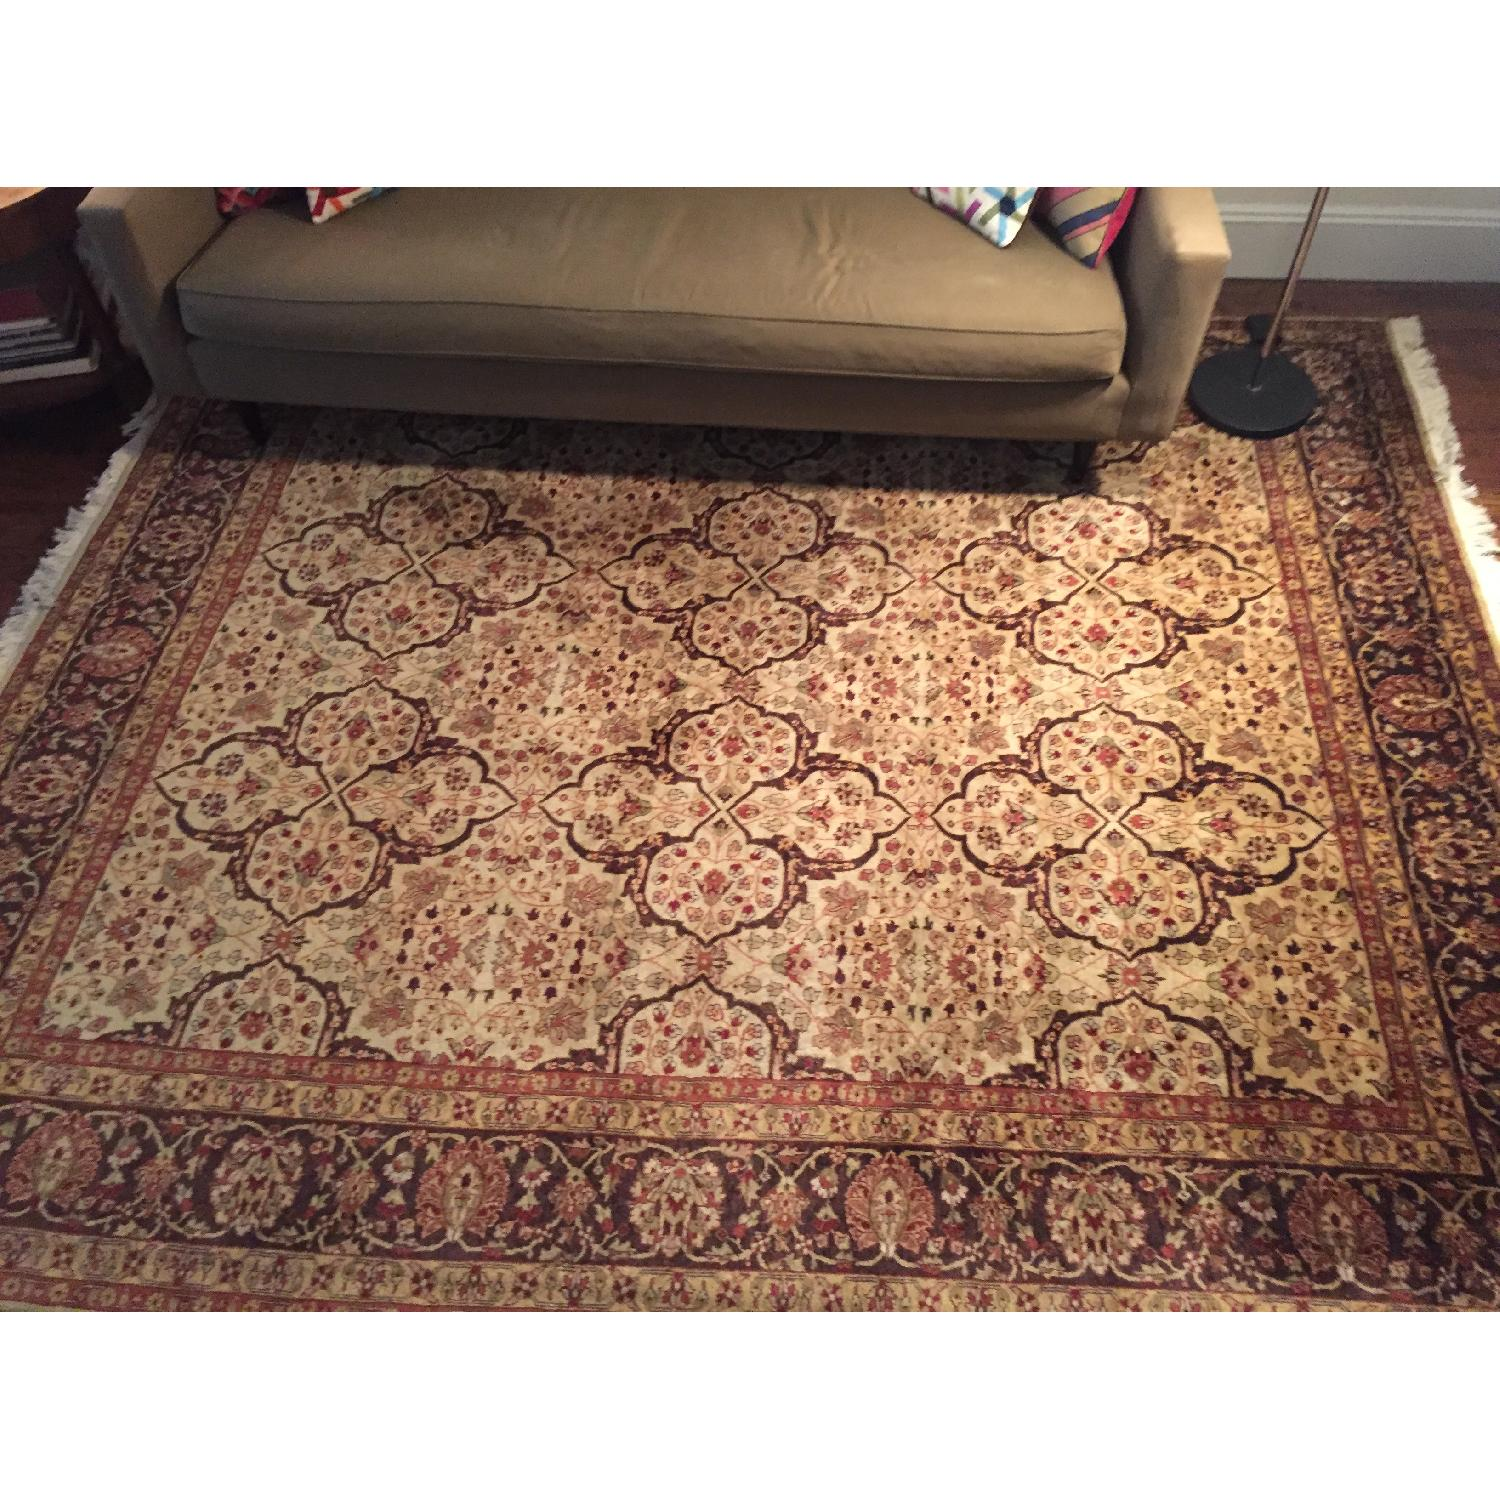 ABC Carpet and Home Tea-Stained Rug - image-1